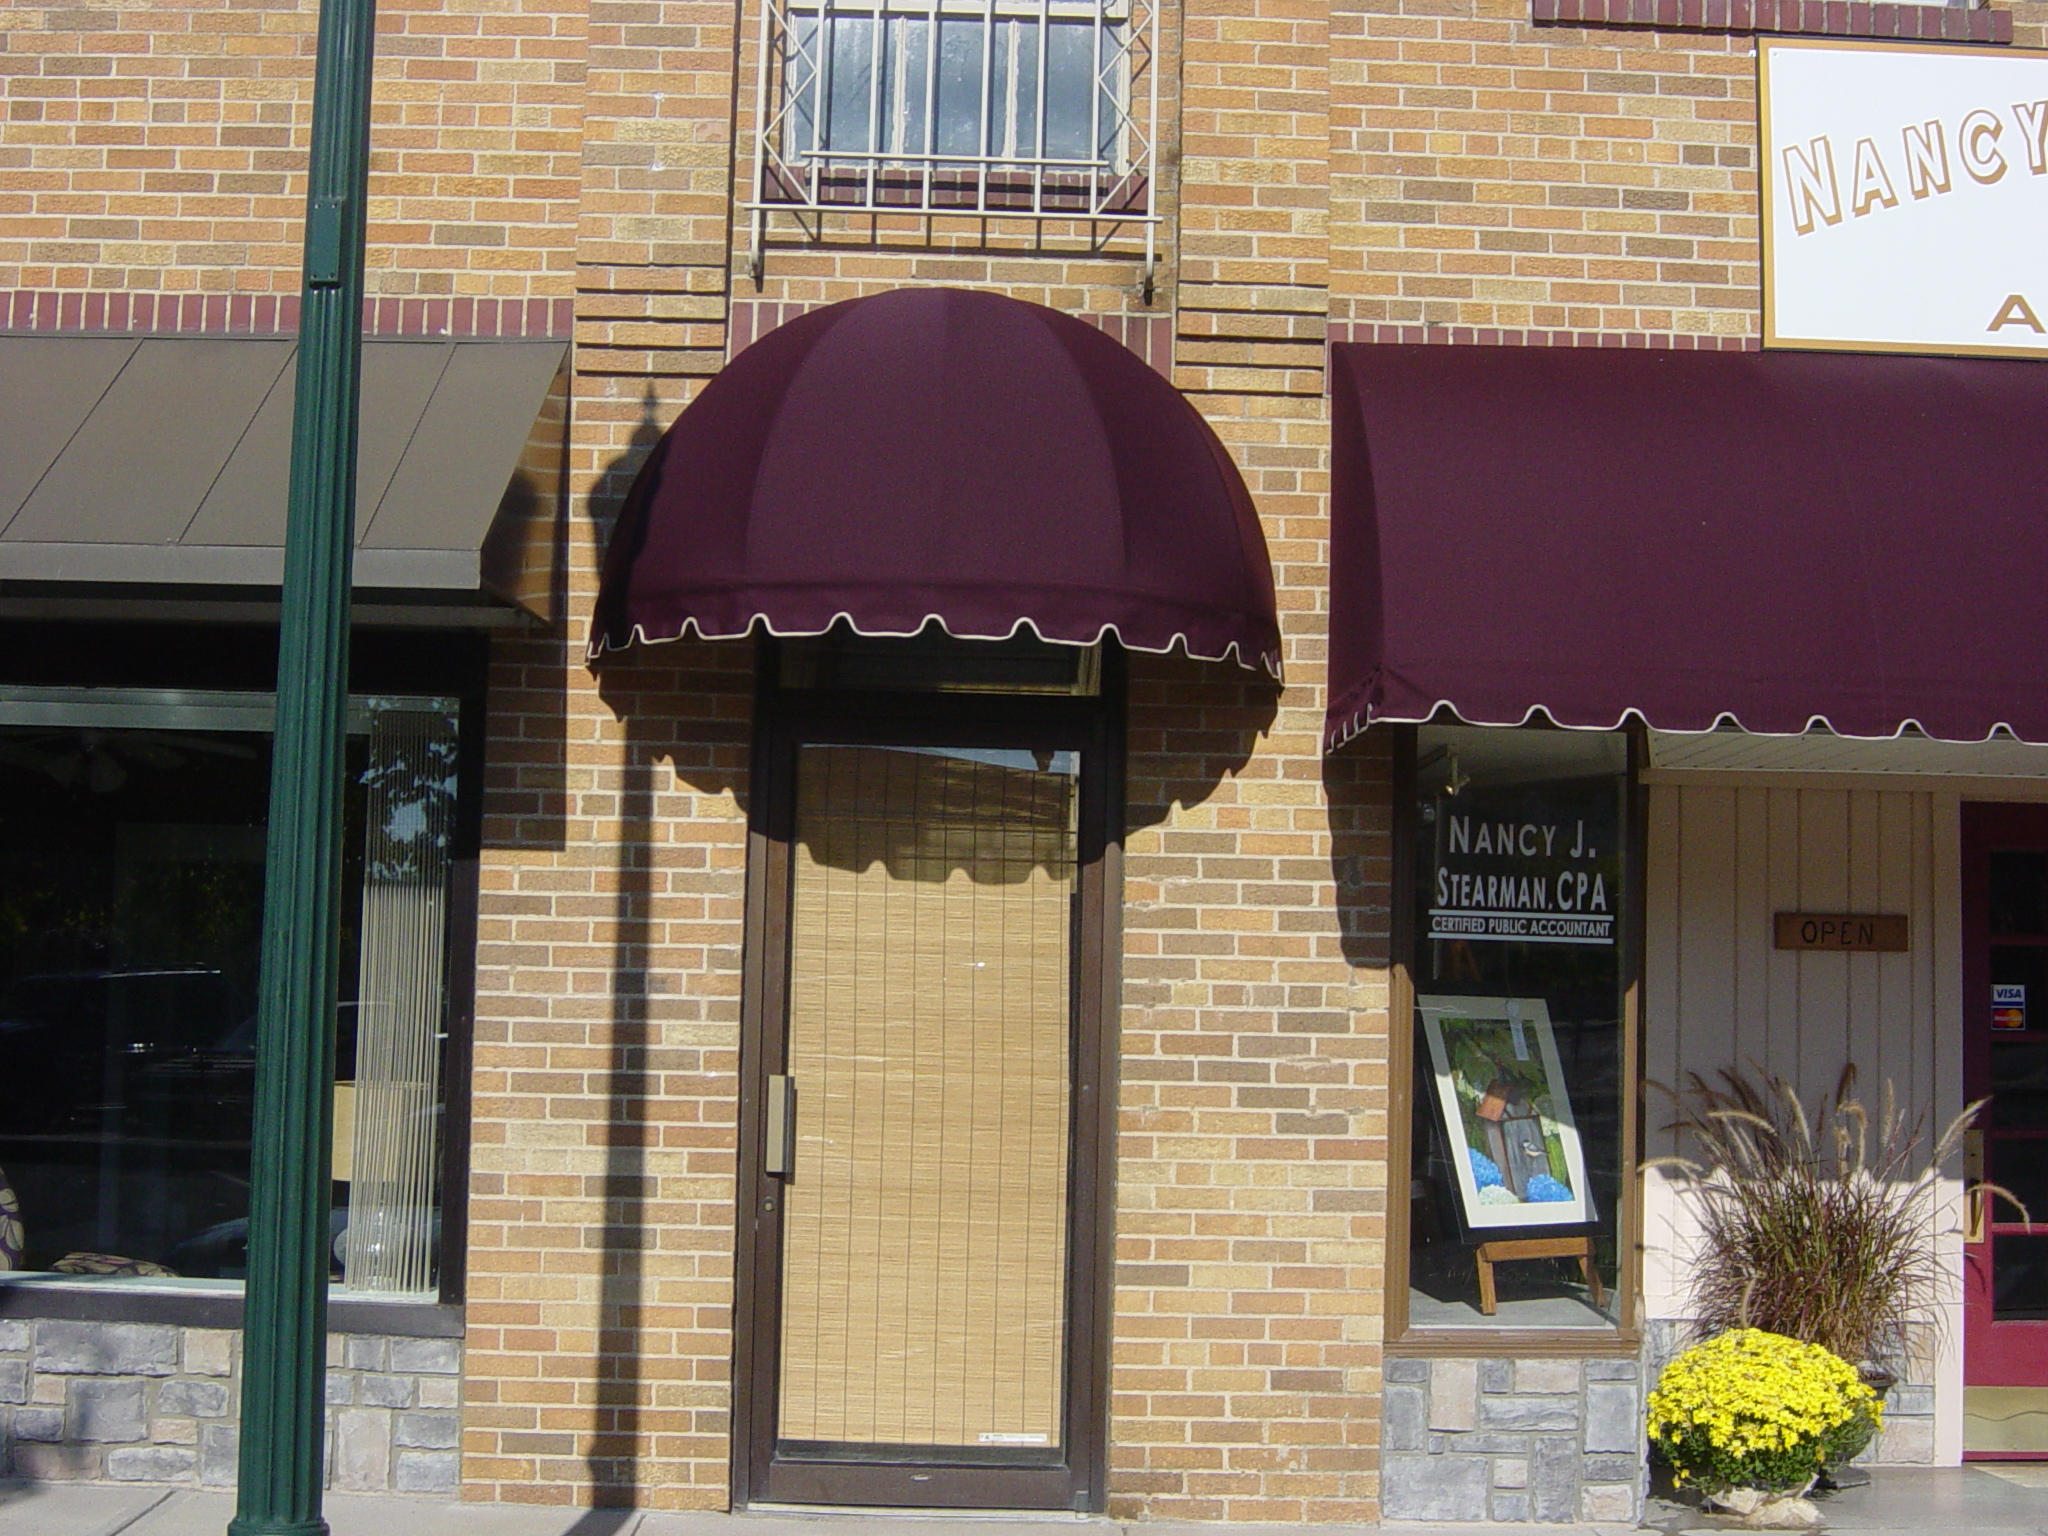 abbott kickers awnings louisville fixed iproview suppliers video material gallery awning ky proview image w